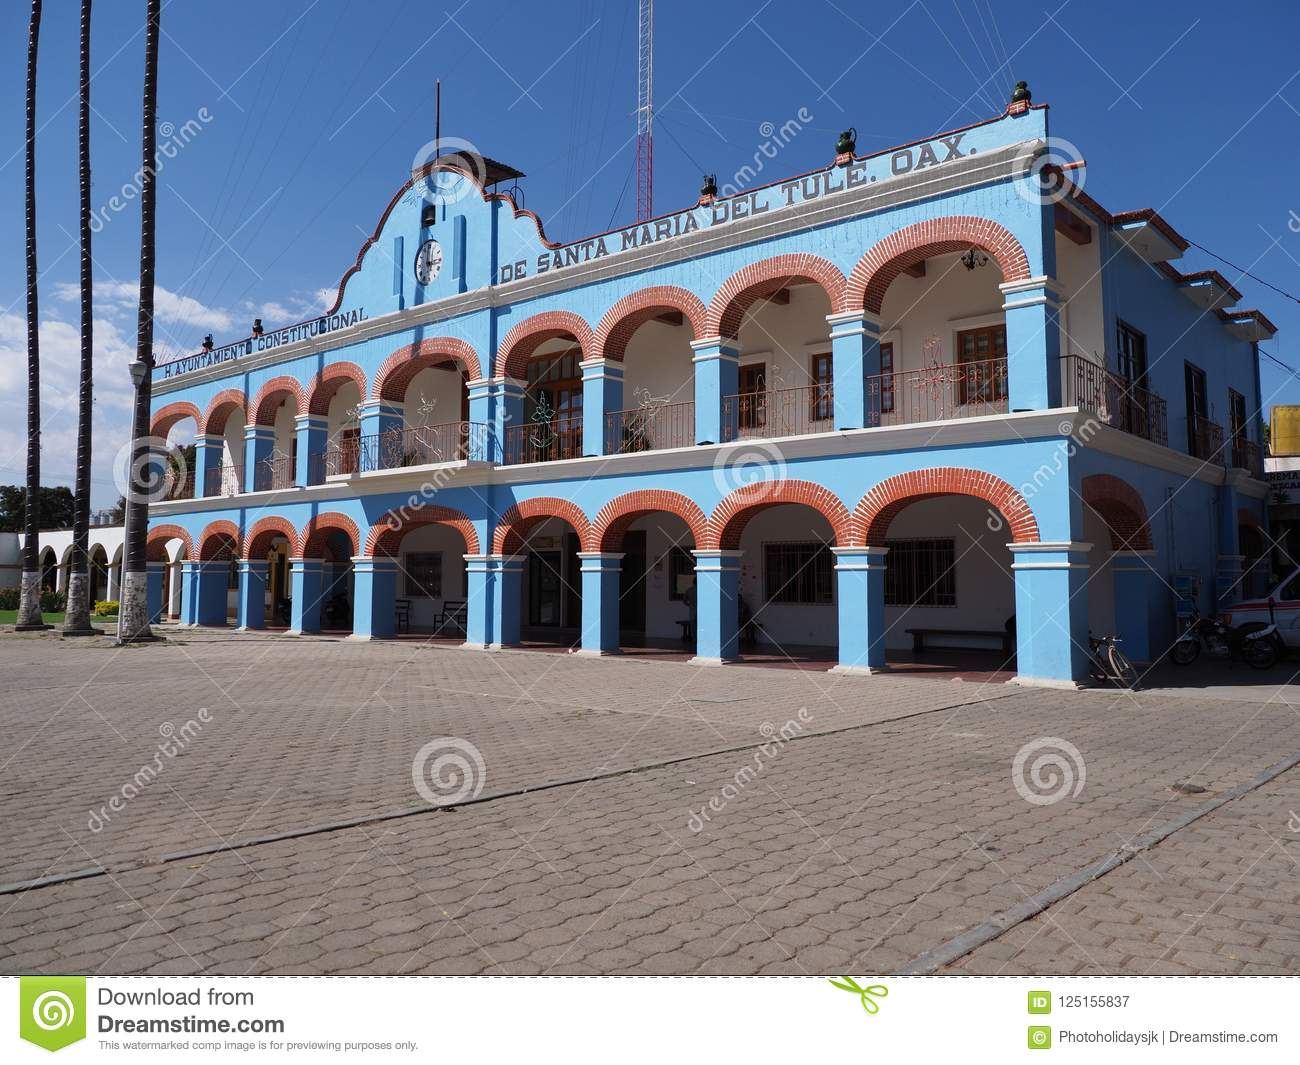 Front and side of town hall on main market square in mexican city center at Oaxaca state in Mexico